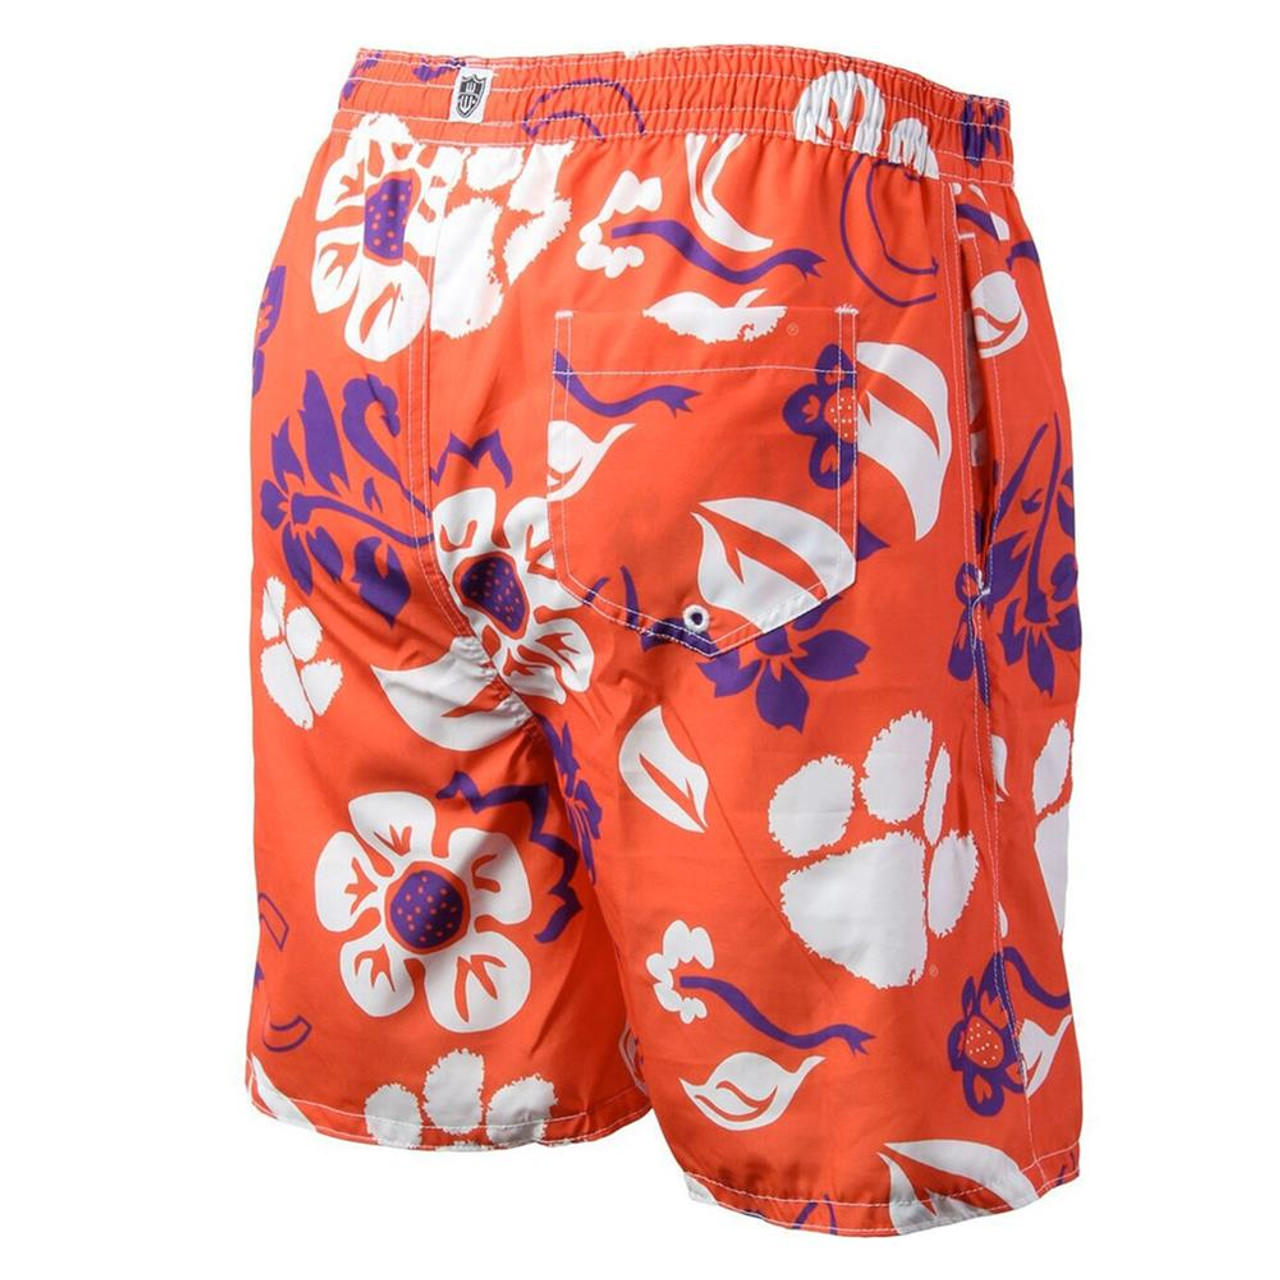 Men's FSU Florida State University Swim Trunks Floral Swim Shorts